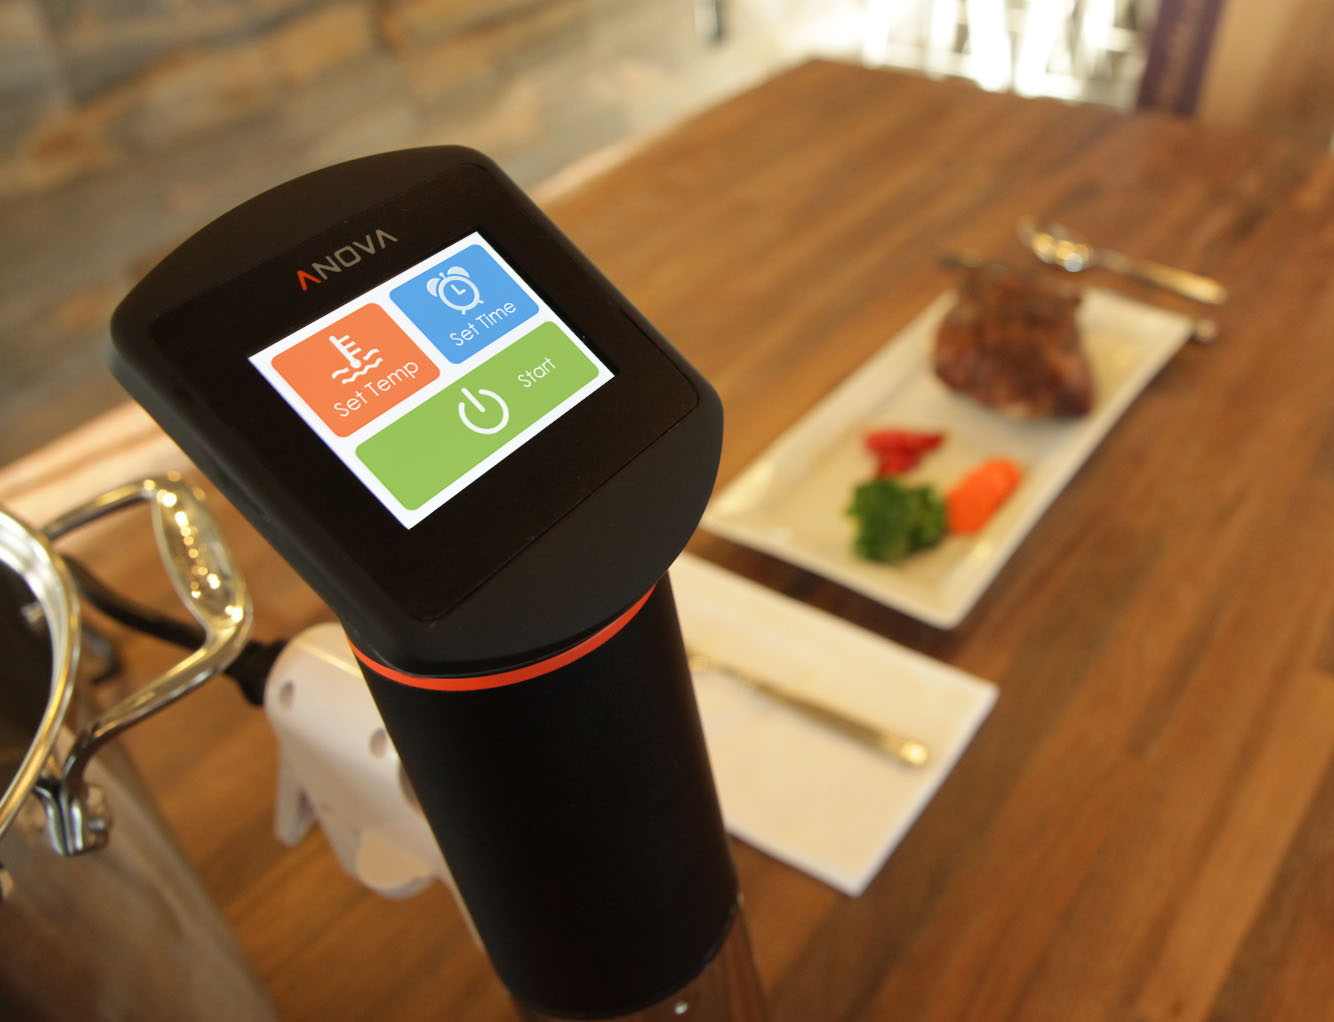 The consistent temperature that the Anova Sous Vide Immersion Circulator provides allows for home cooks of any level to enjoy quality sous vide cooking.